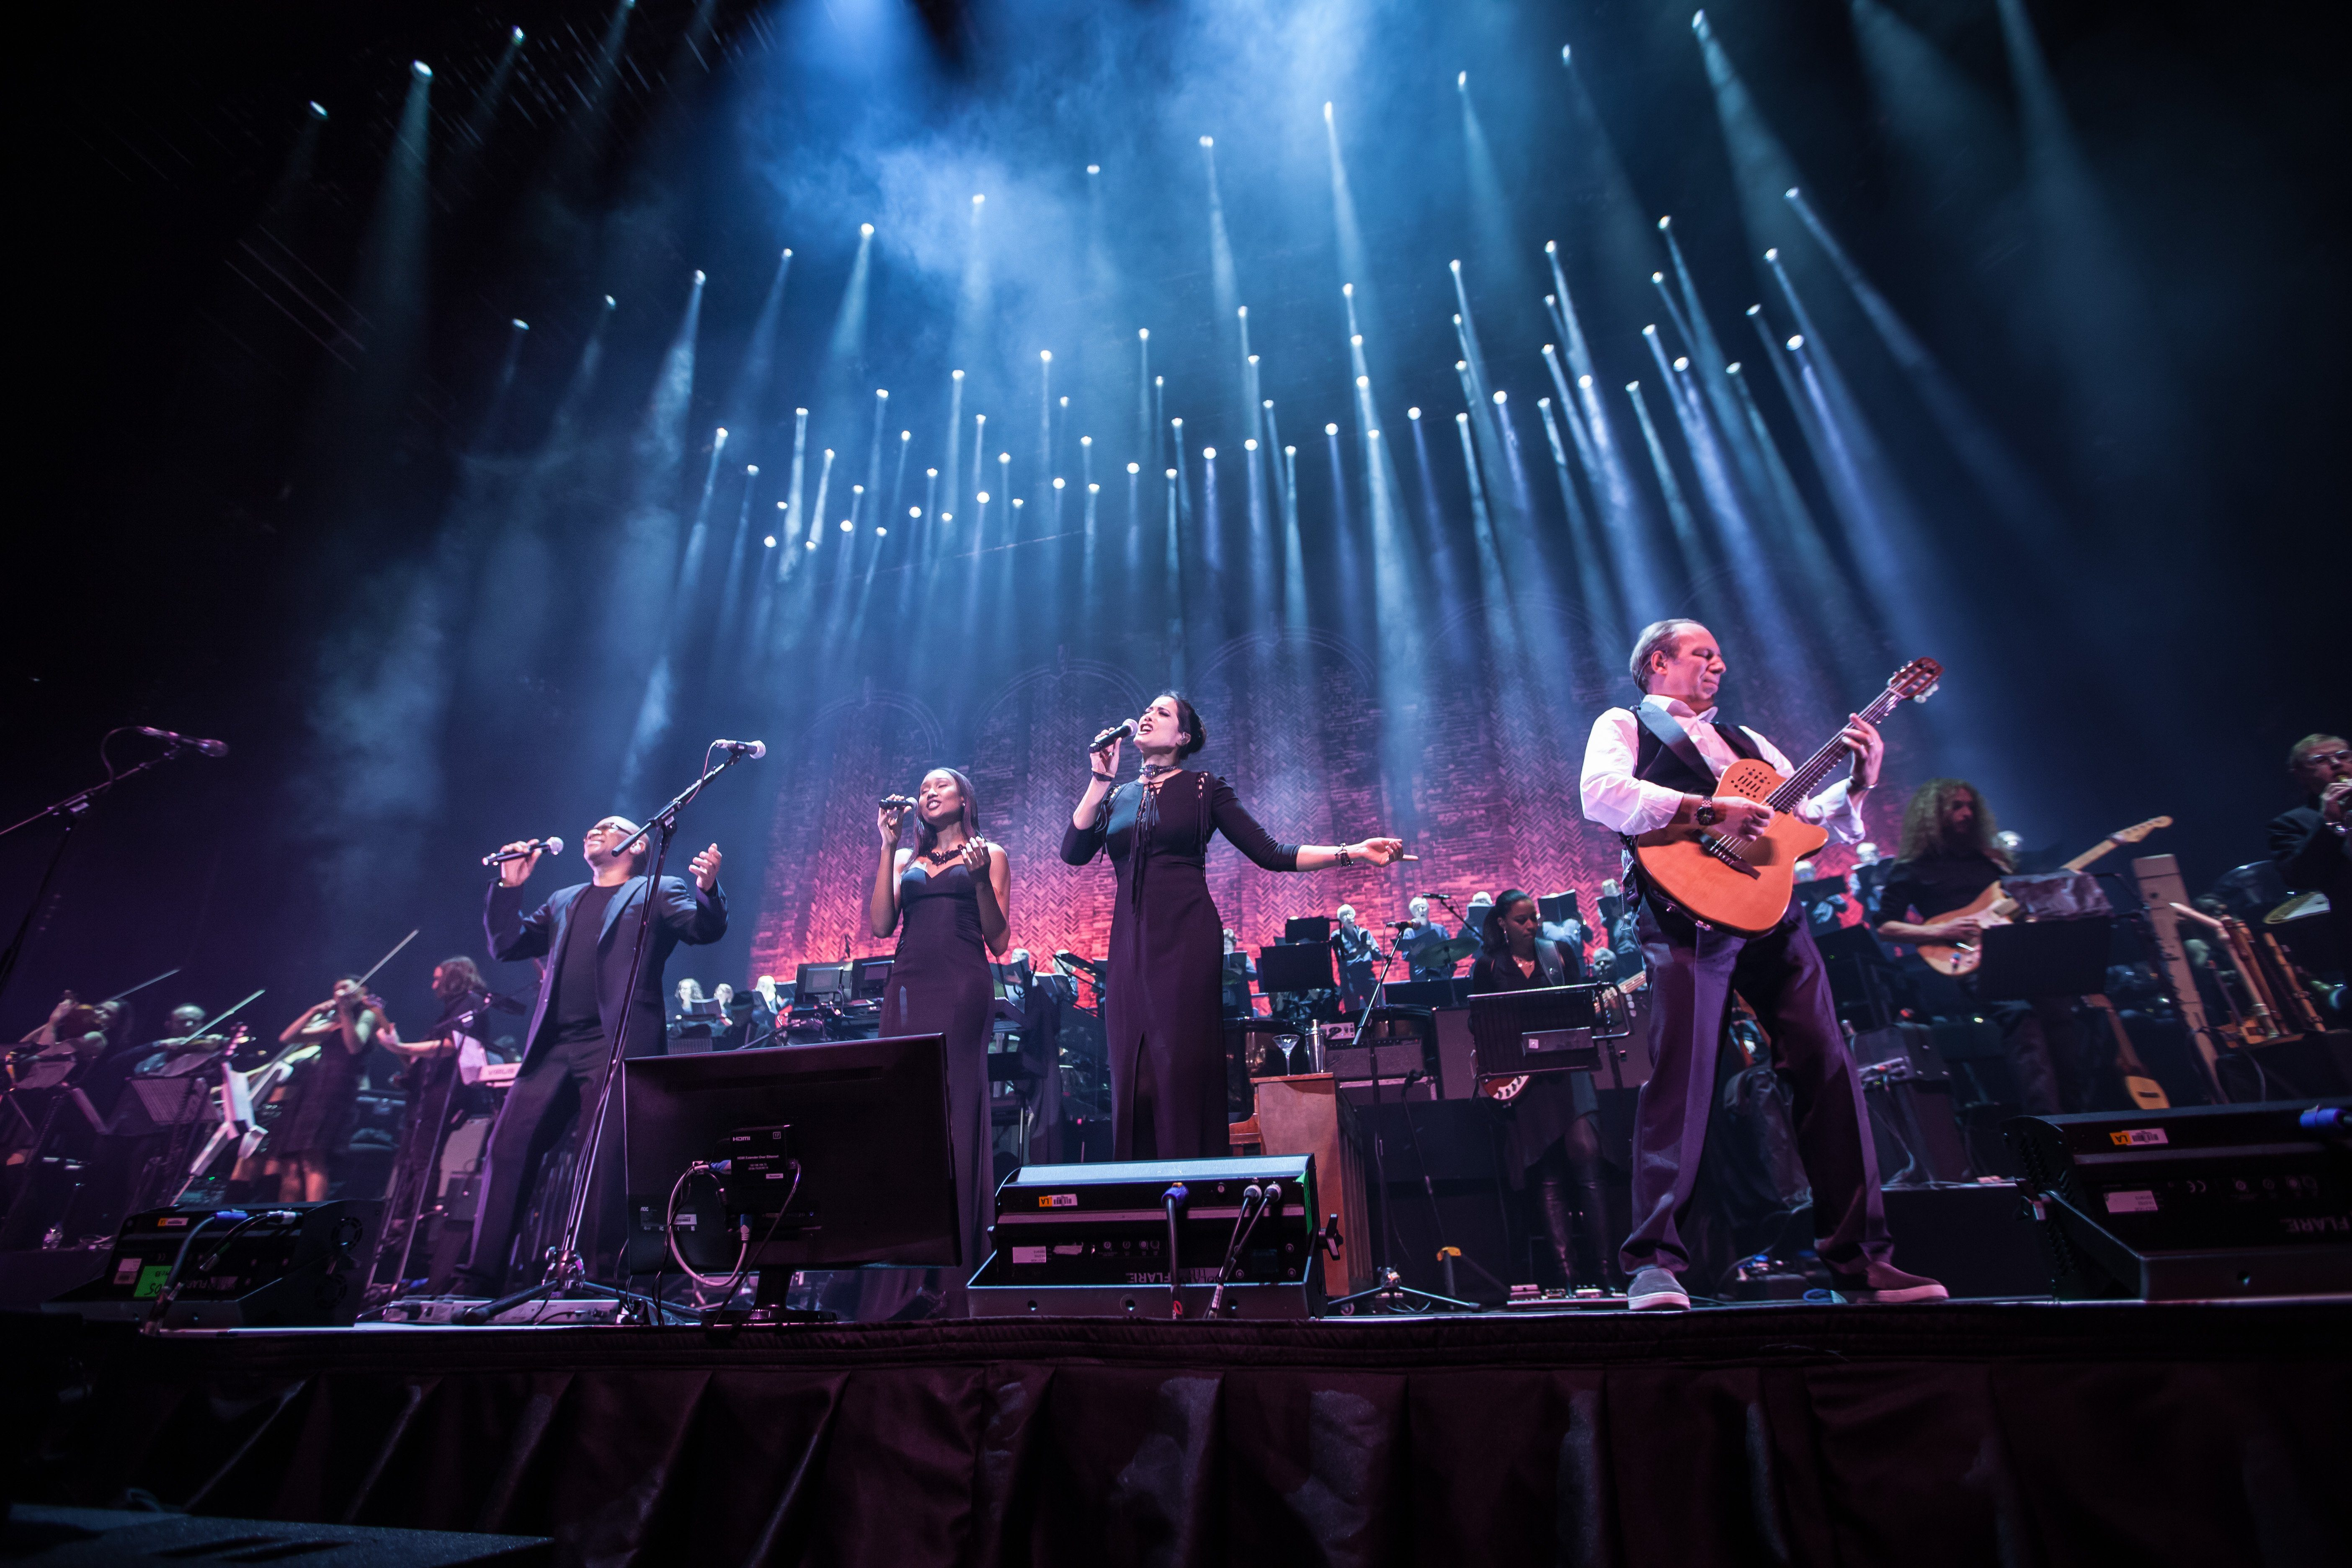 Kritik Hans Zimmer On Tour 2016 Amazonade